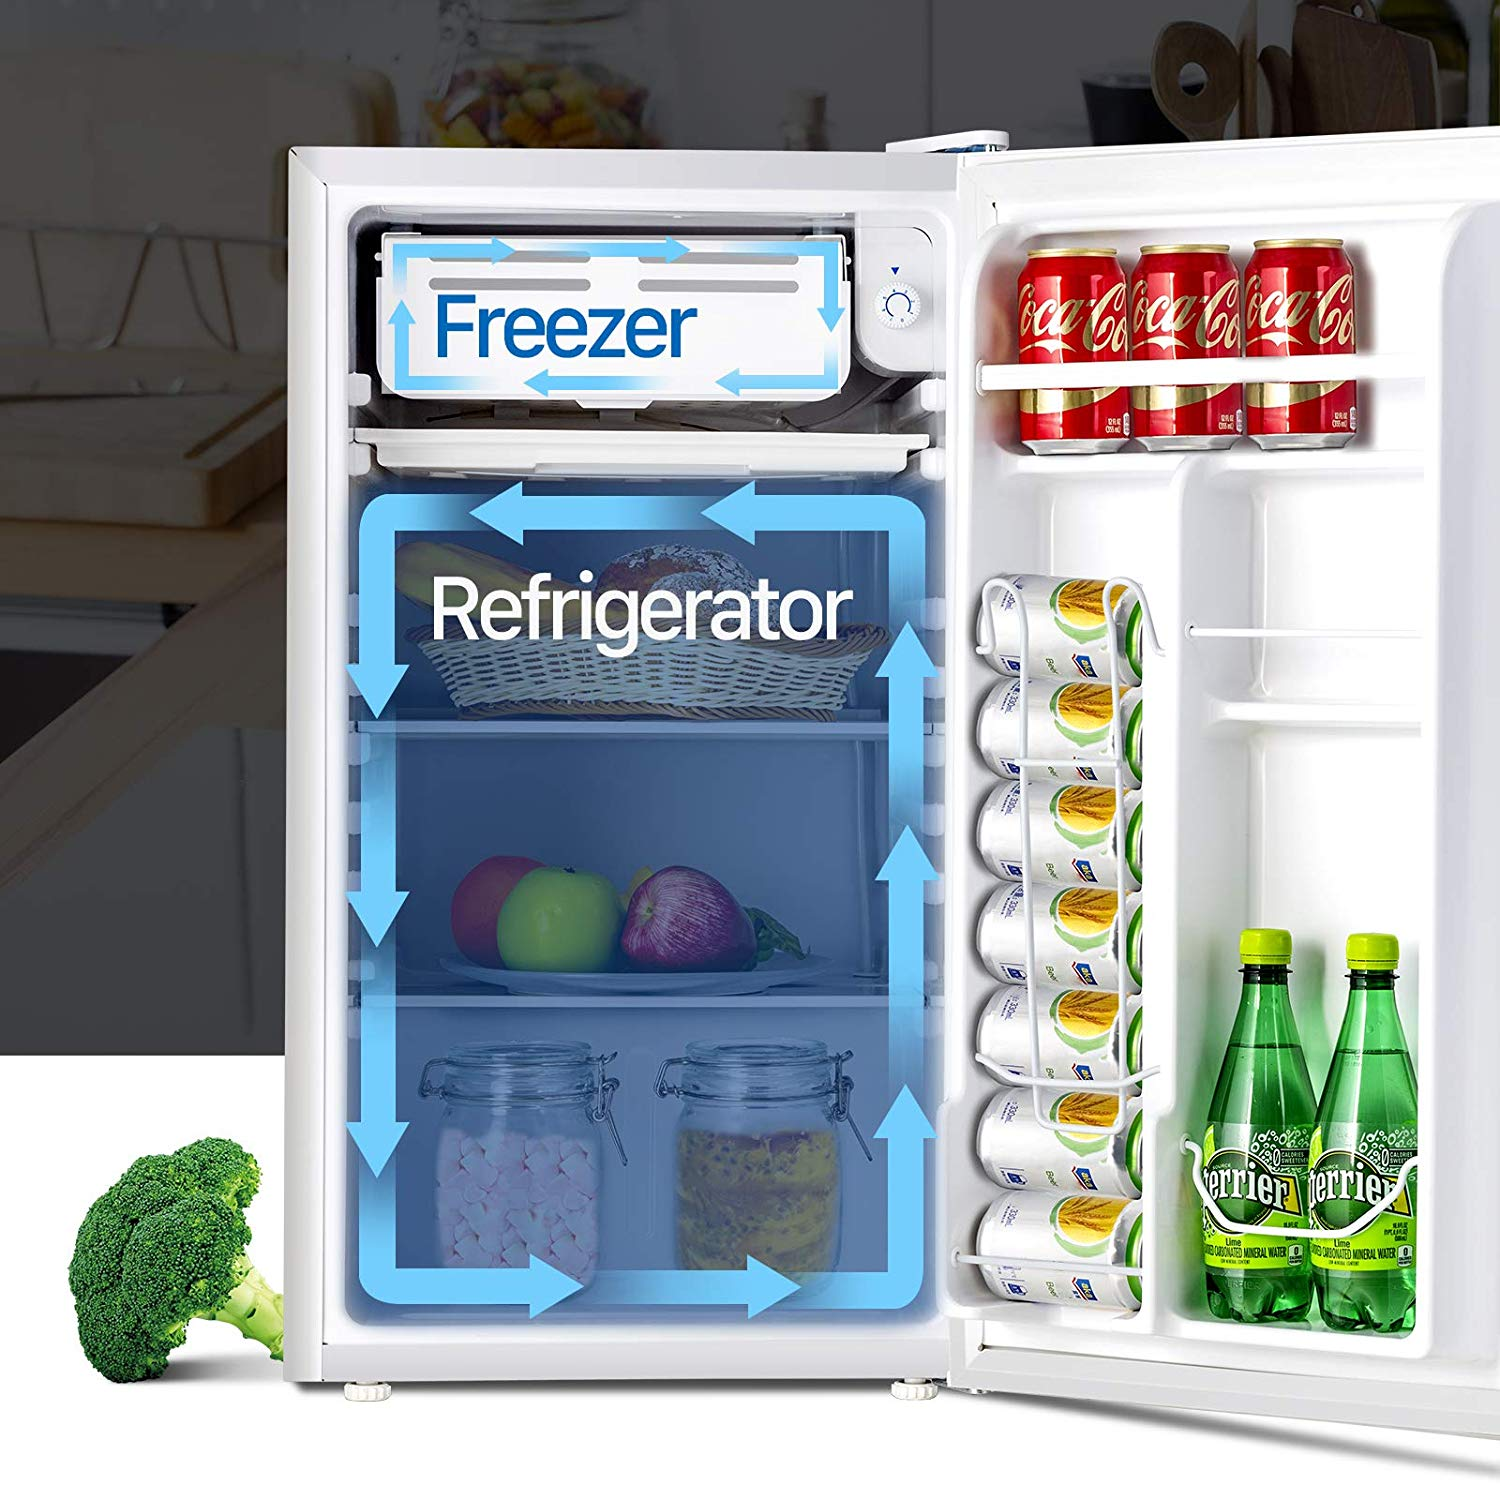 Kuppet Compact Refrigerator Mini Refrigerator Small Drink Food Storage Machine for Dorm, Garage, Camper, Basement or Office, Single Door Mini Fridge, 3.2 Cu.Ft (White)